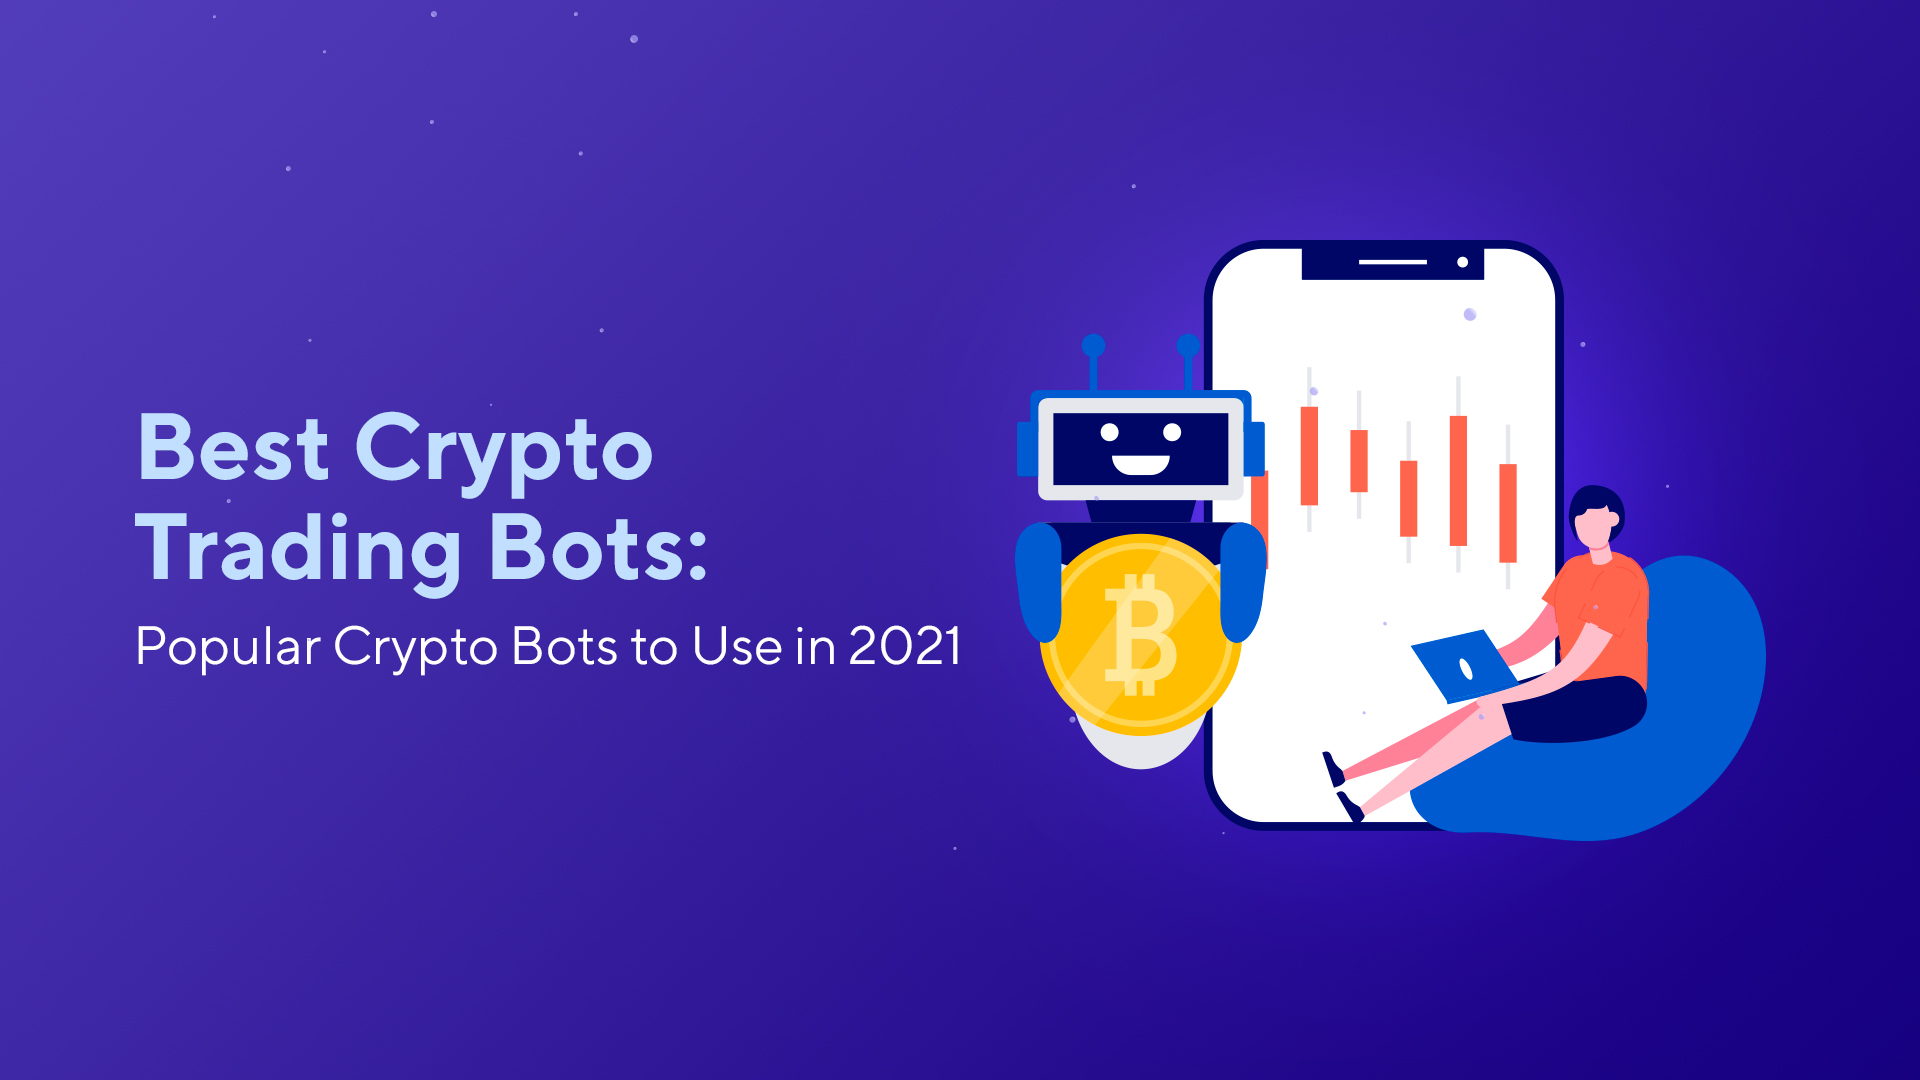 Best Crypto Trading Bots: Popular Crypto Bots to Use in 2021